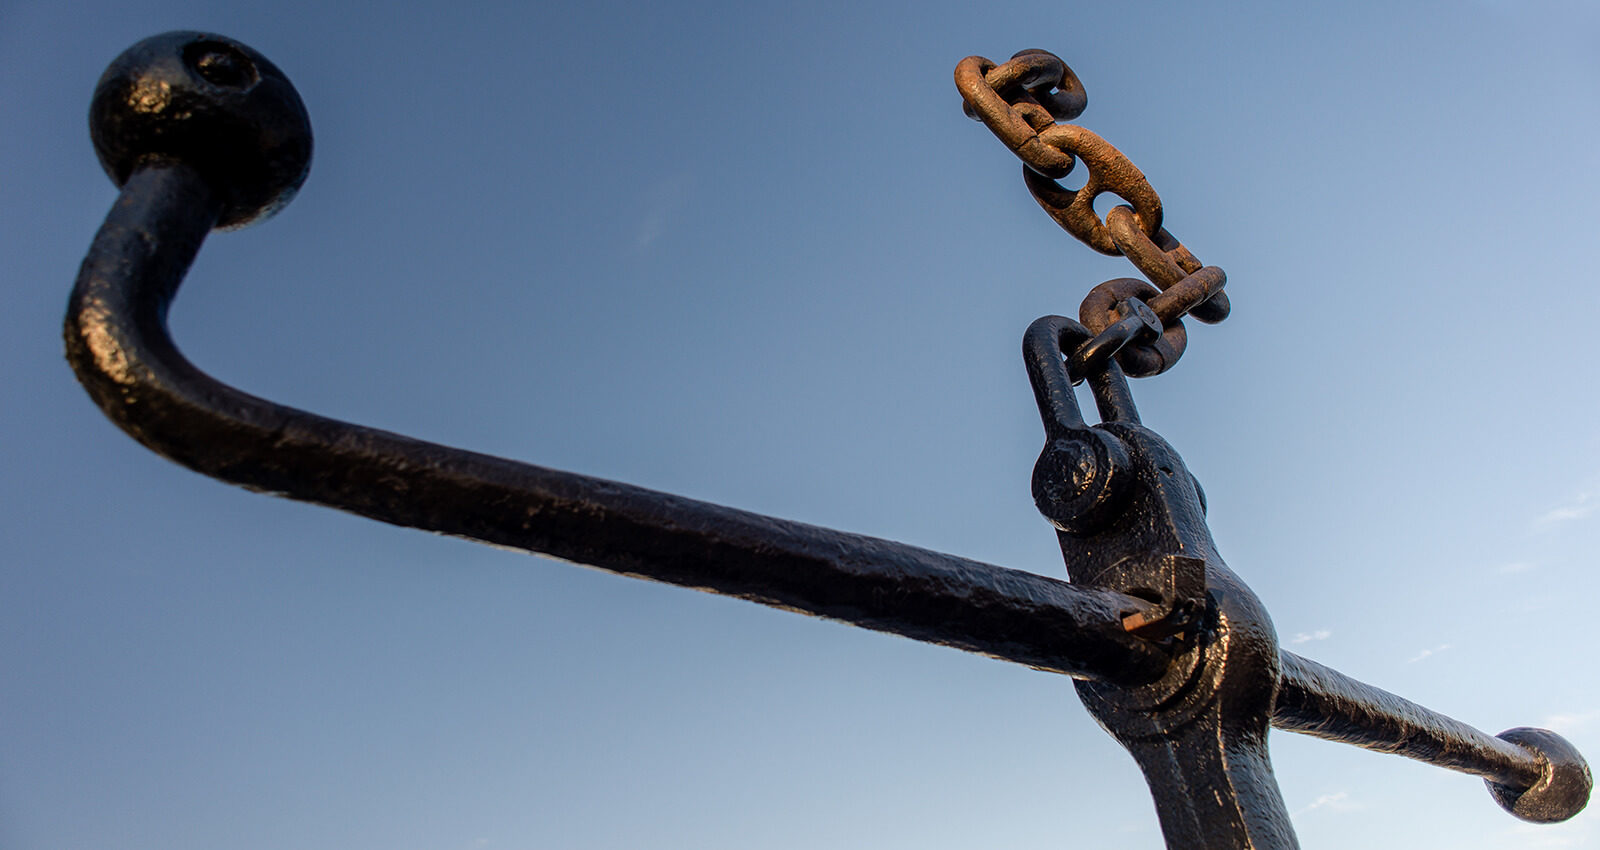 Top section of the Anchor at East Notch art installation.